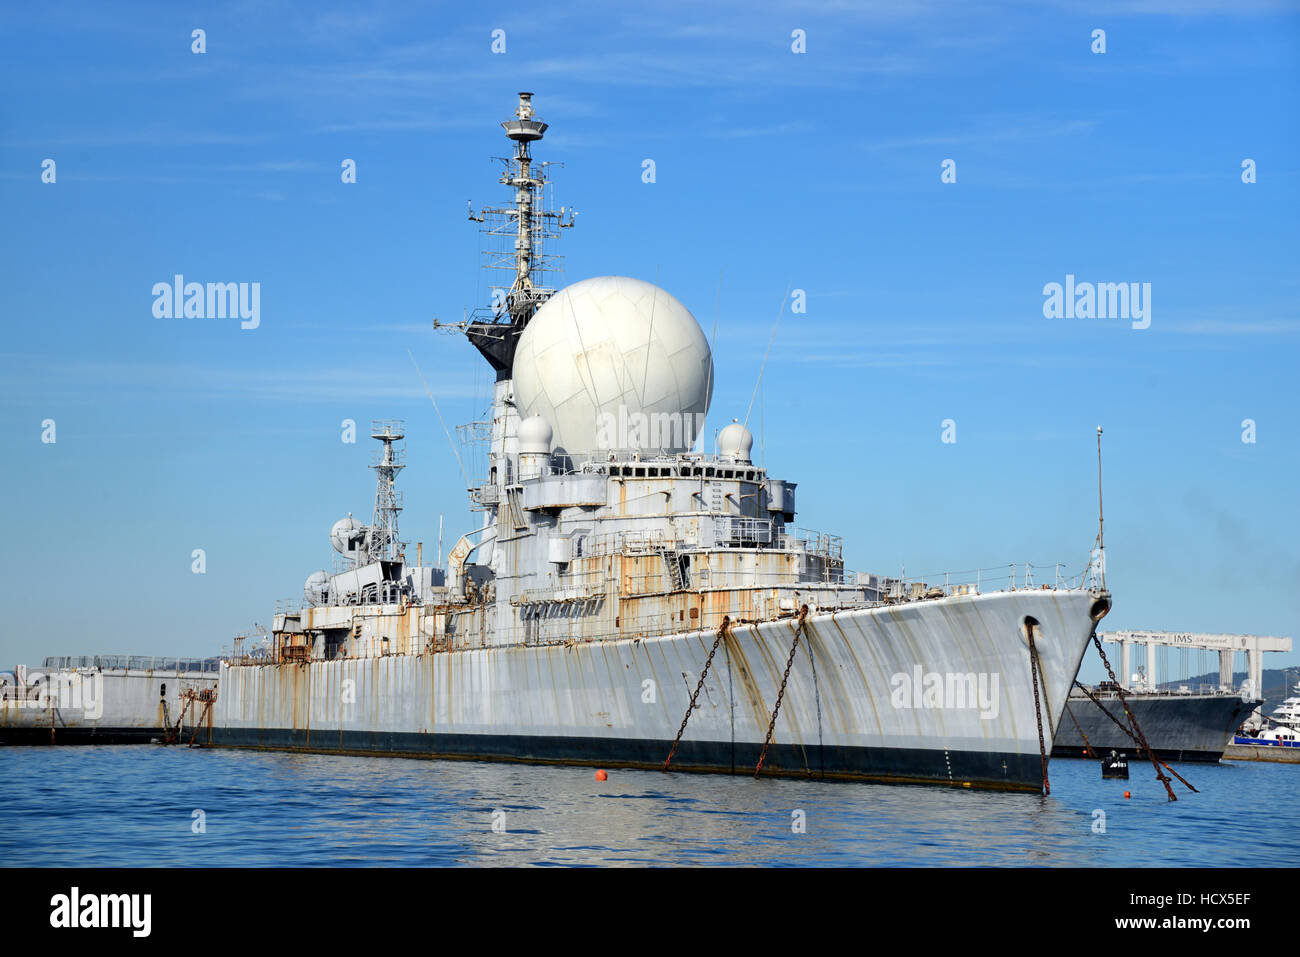 Decommissioned French Frigate Duquesne Ship or Warship Moored in the Bay of Toulon France - Stock Image